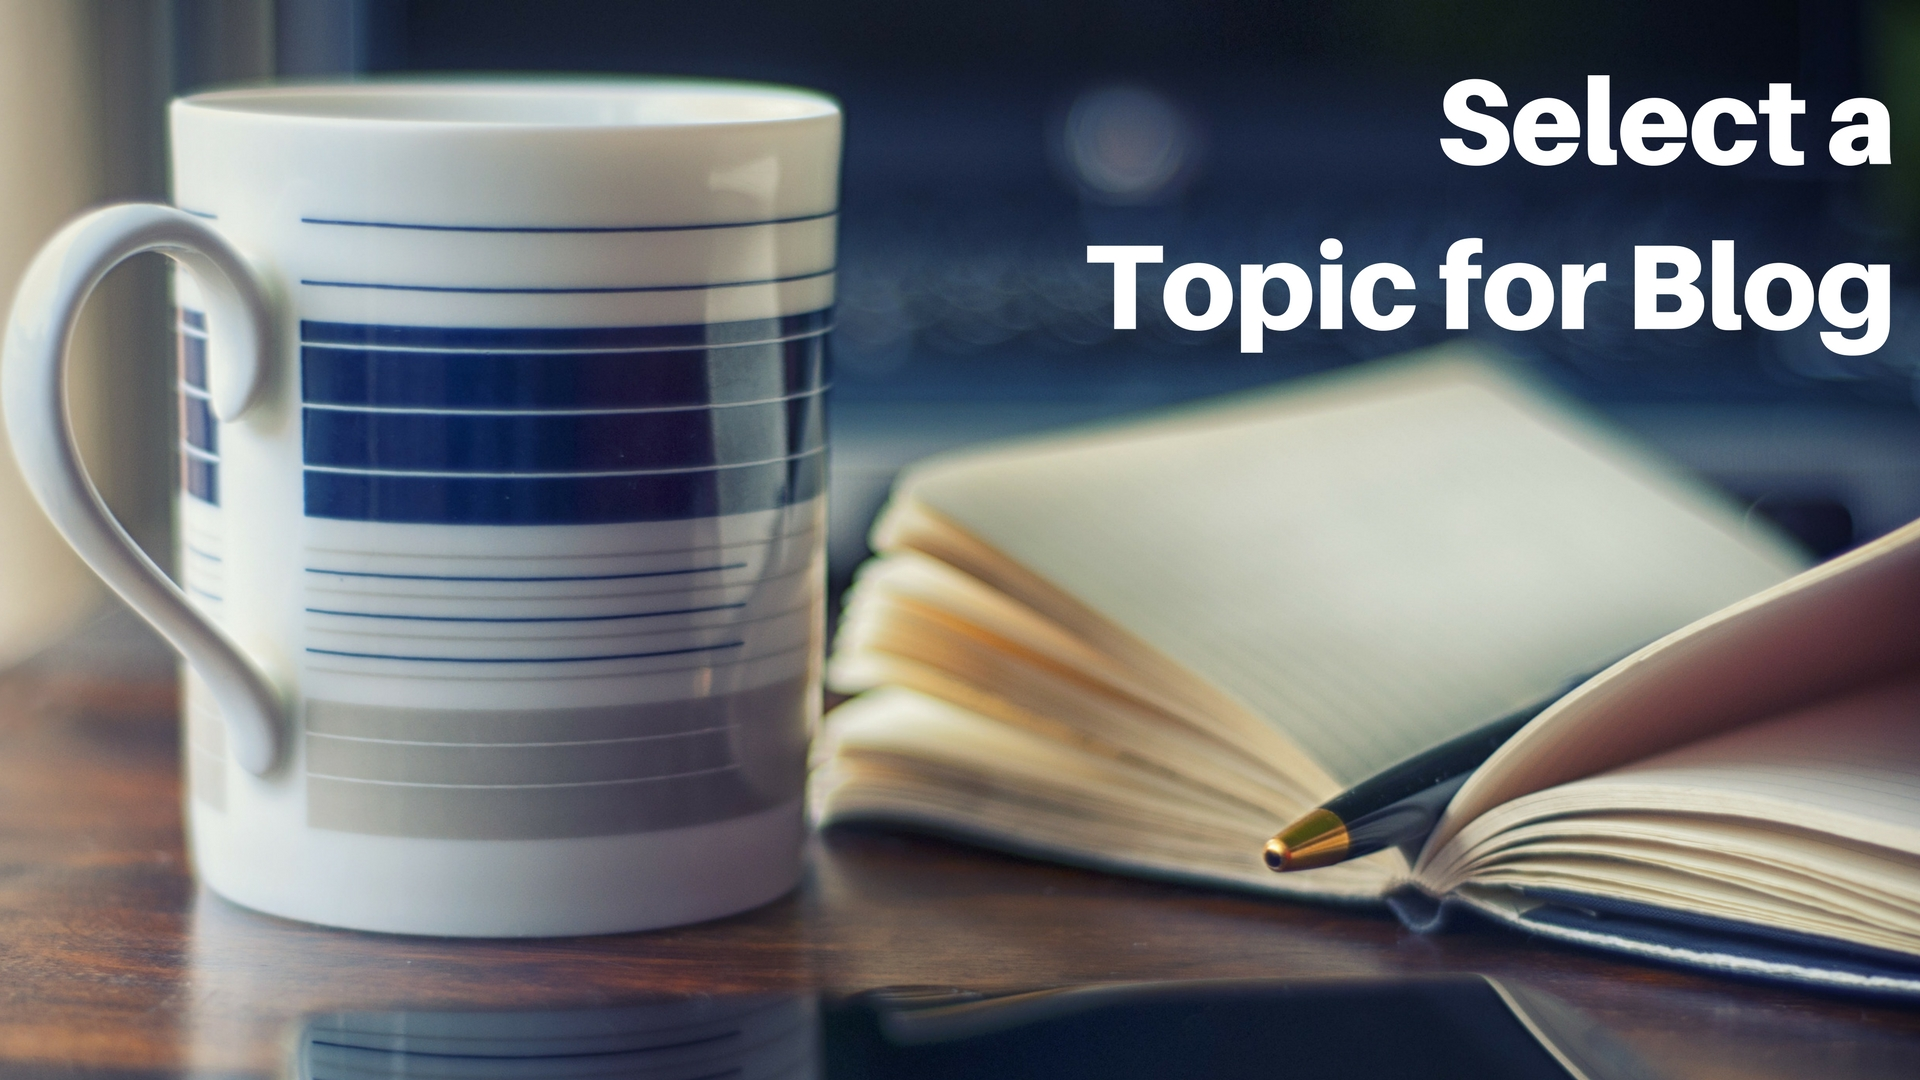 Select a topic for your blog